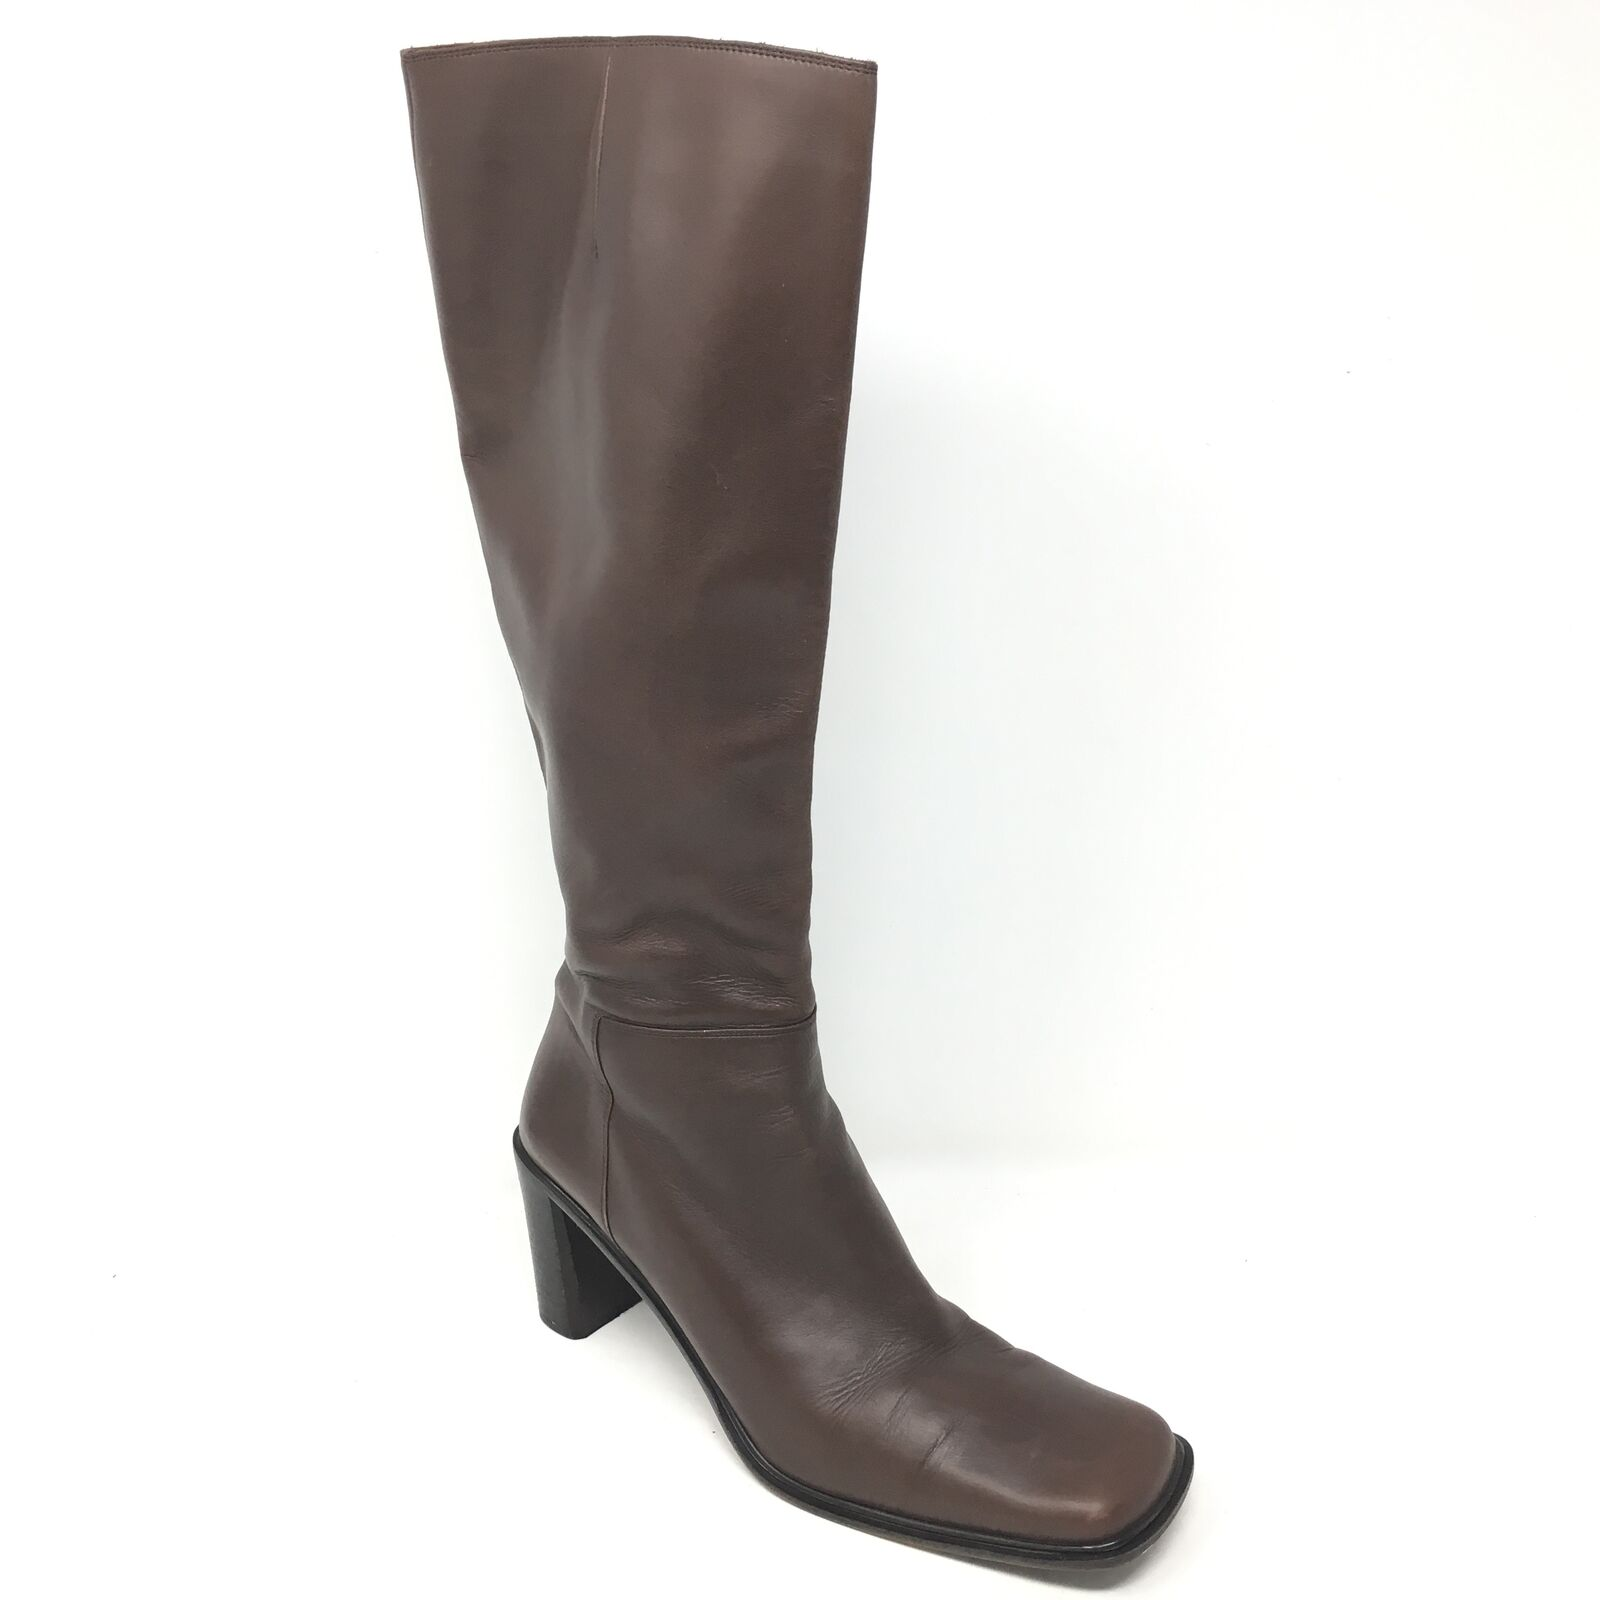 Women's Via Spiga Knee High Boots shoes Sz 7.5M Brown Leather Side Zip  P14